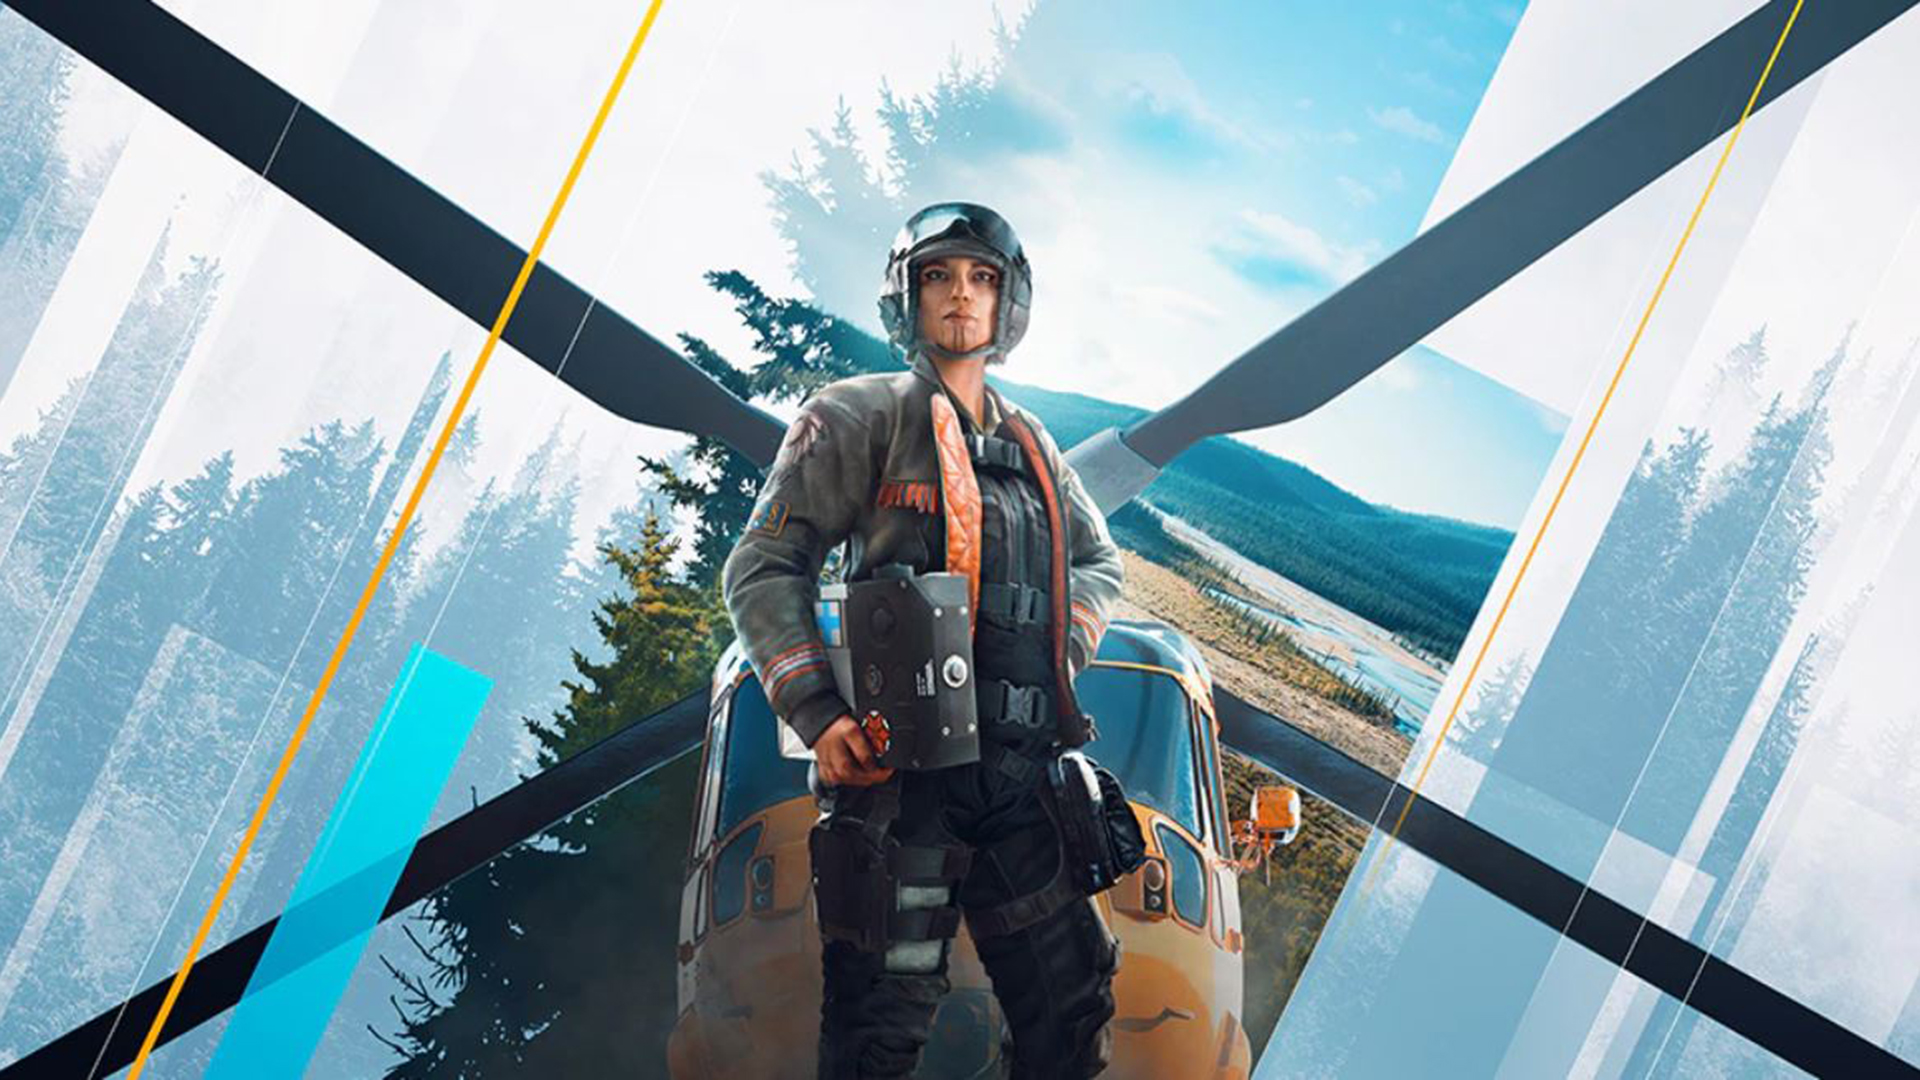 rainbow-six-siege-operation-north-star-is-now-live-on-the-main-server